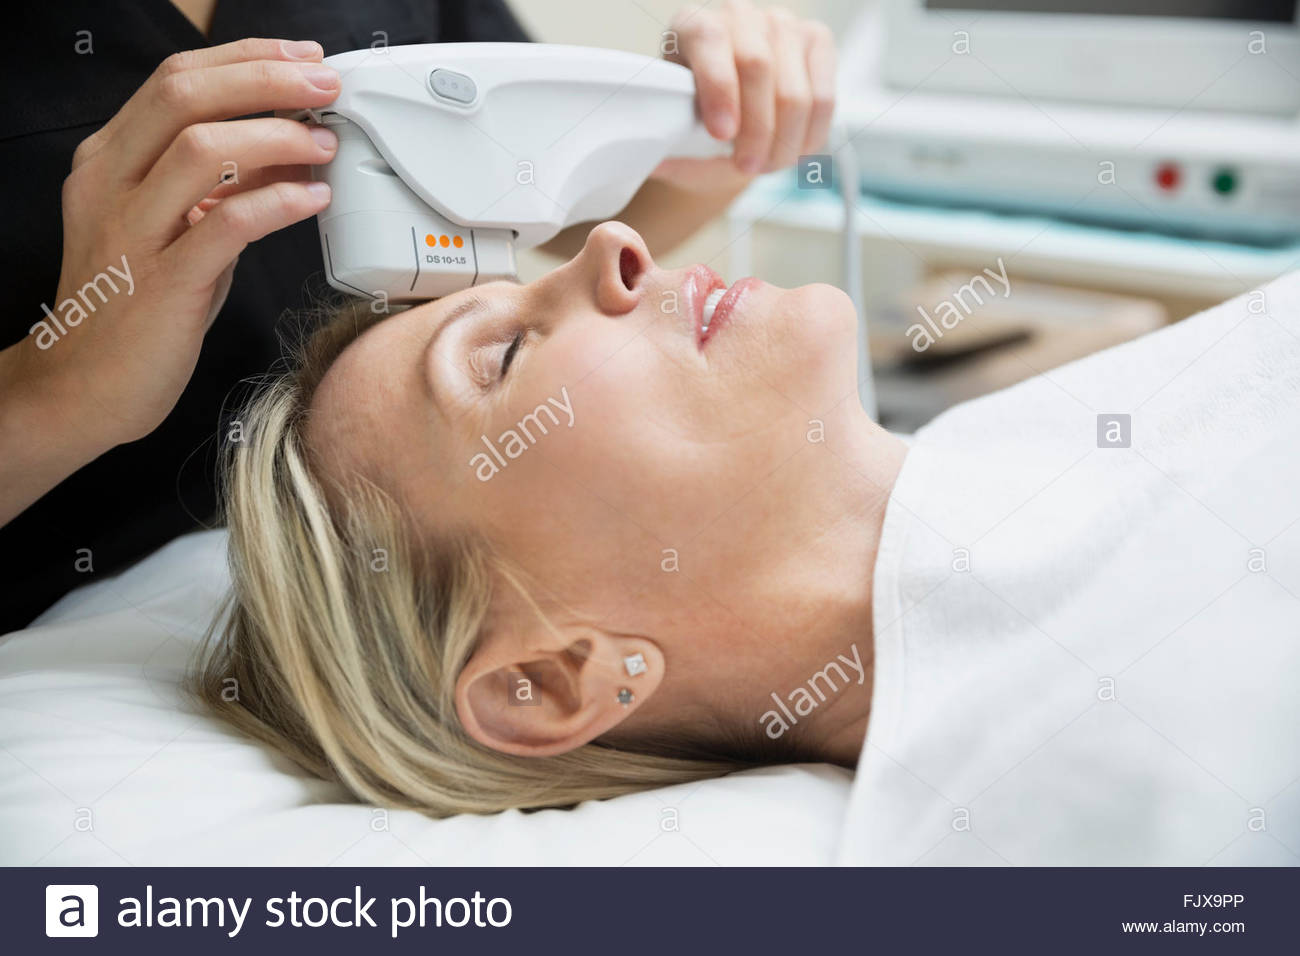 Aesthetic technician using ultrasound equipment on womans face - Stock Image